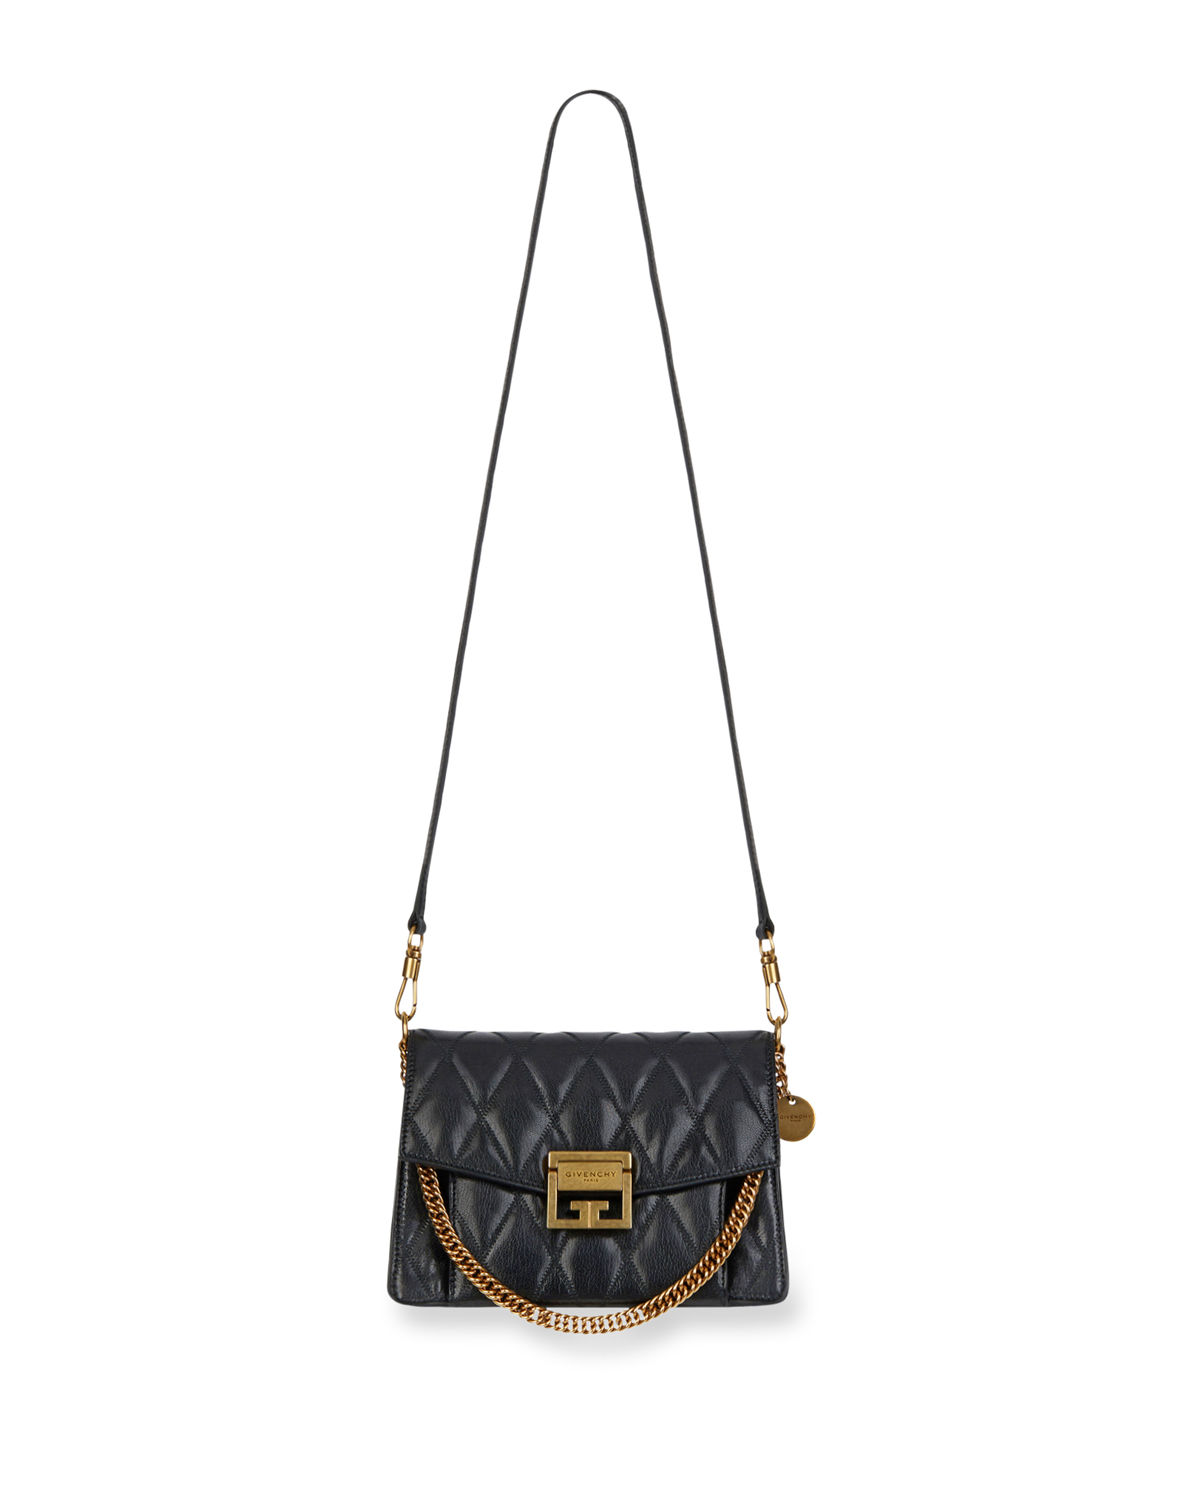 34ab1a7c1b17 Givenchy GV3 Small Quilted Leather Crossbody Bag